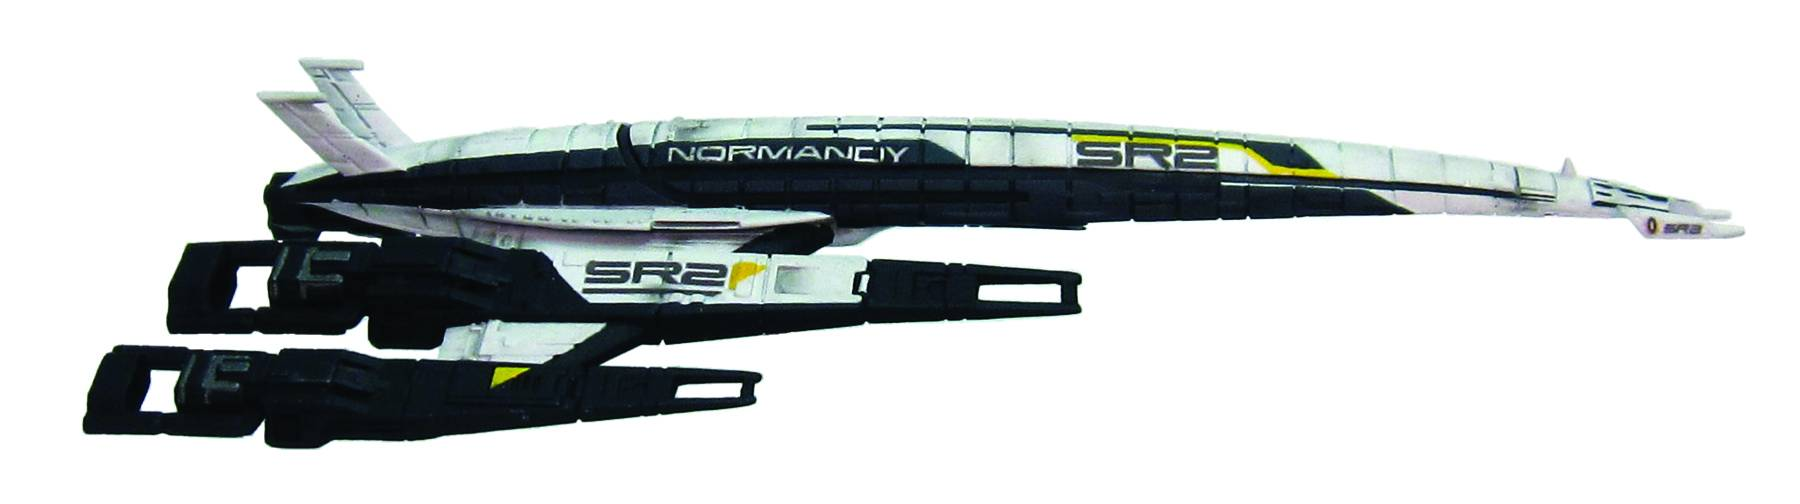 MASS EFFECT NORMANDY SR2 CERBERUS SHIP REPLICA